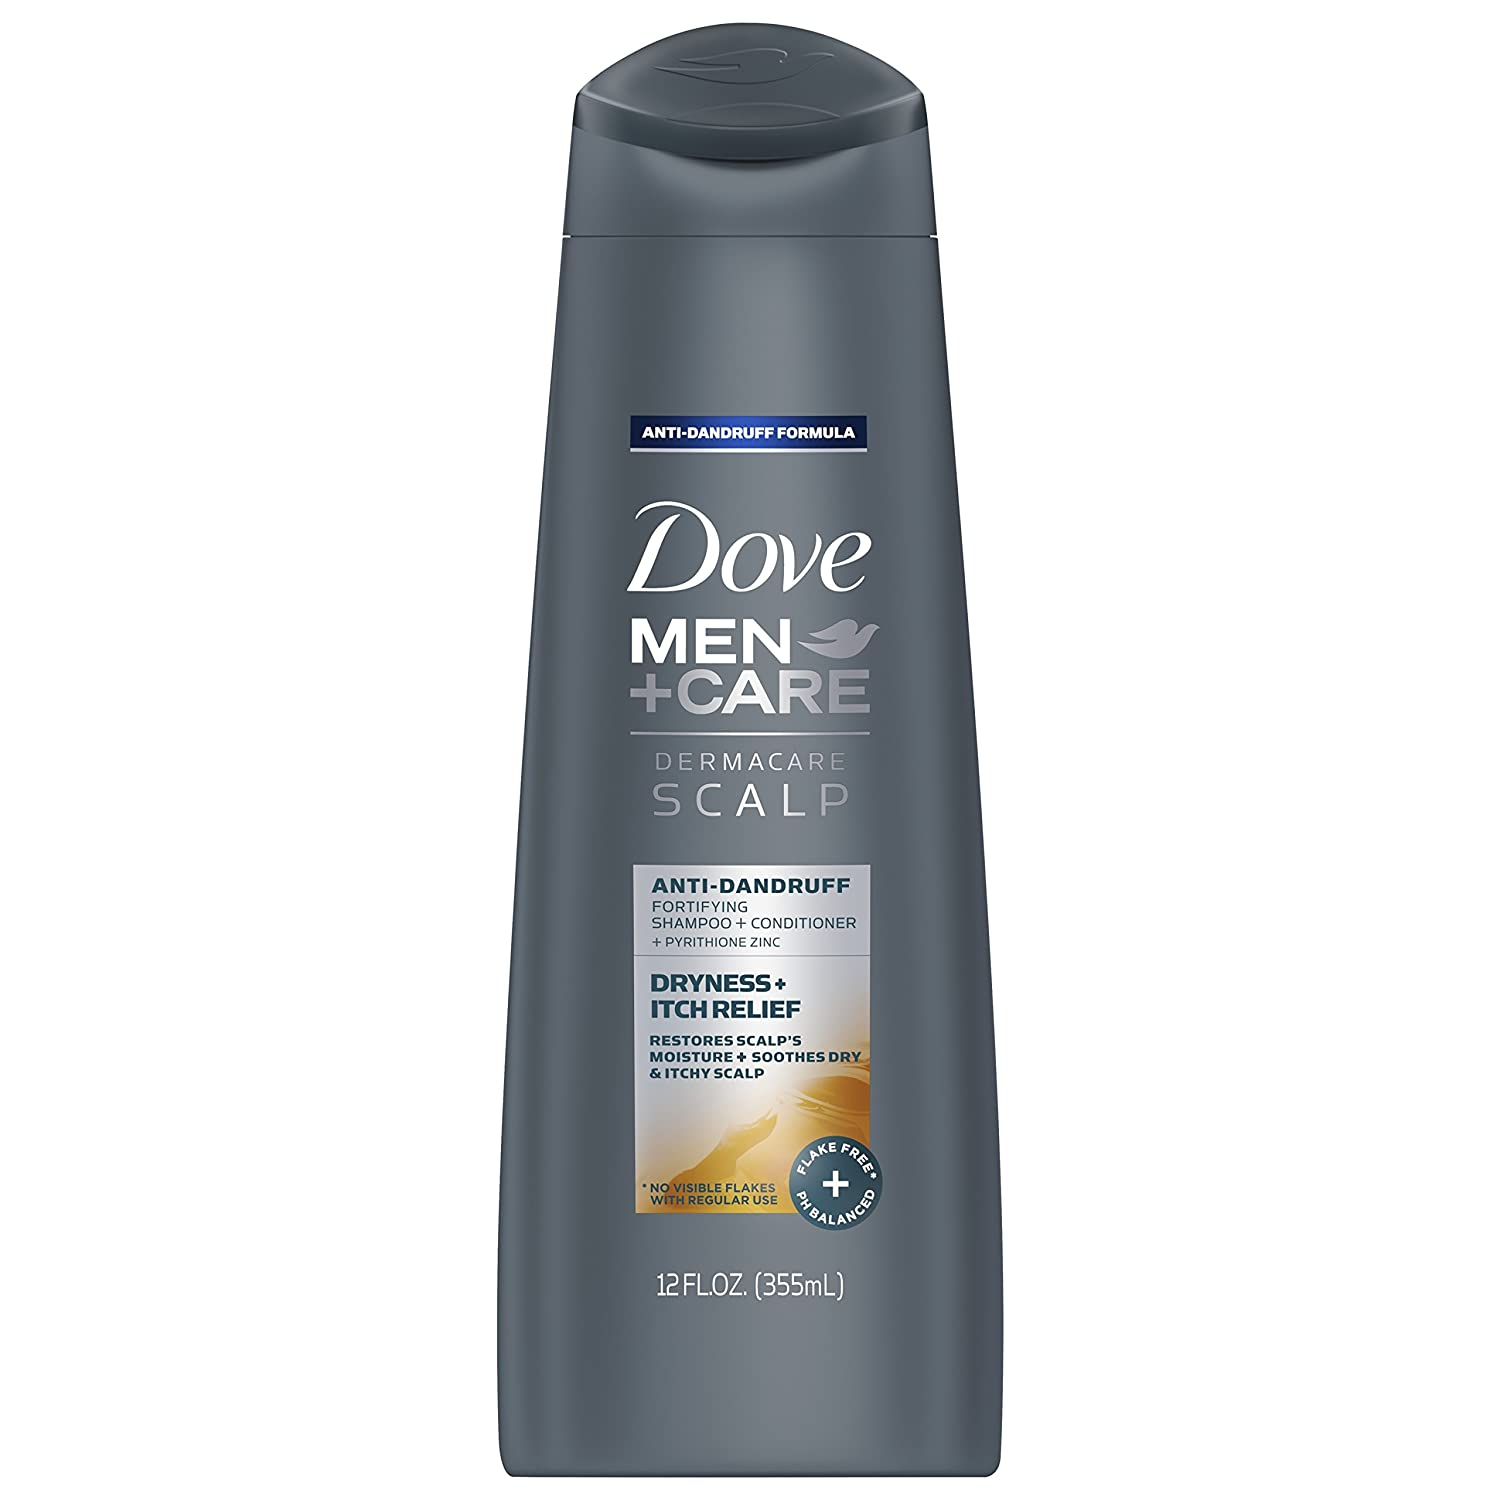 Dove Men + Care 2-in-1 Itch Relief Shampoo and Conditioner 12oz, pack of 1